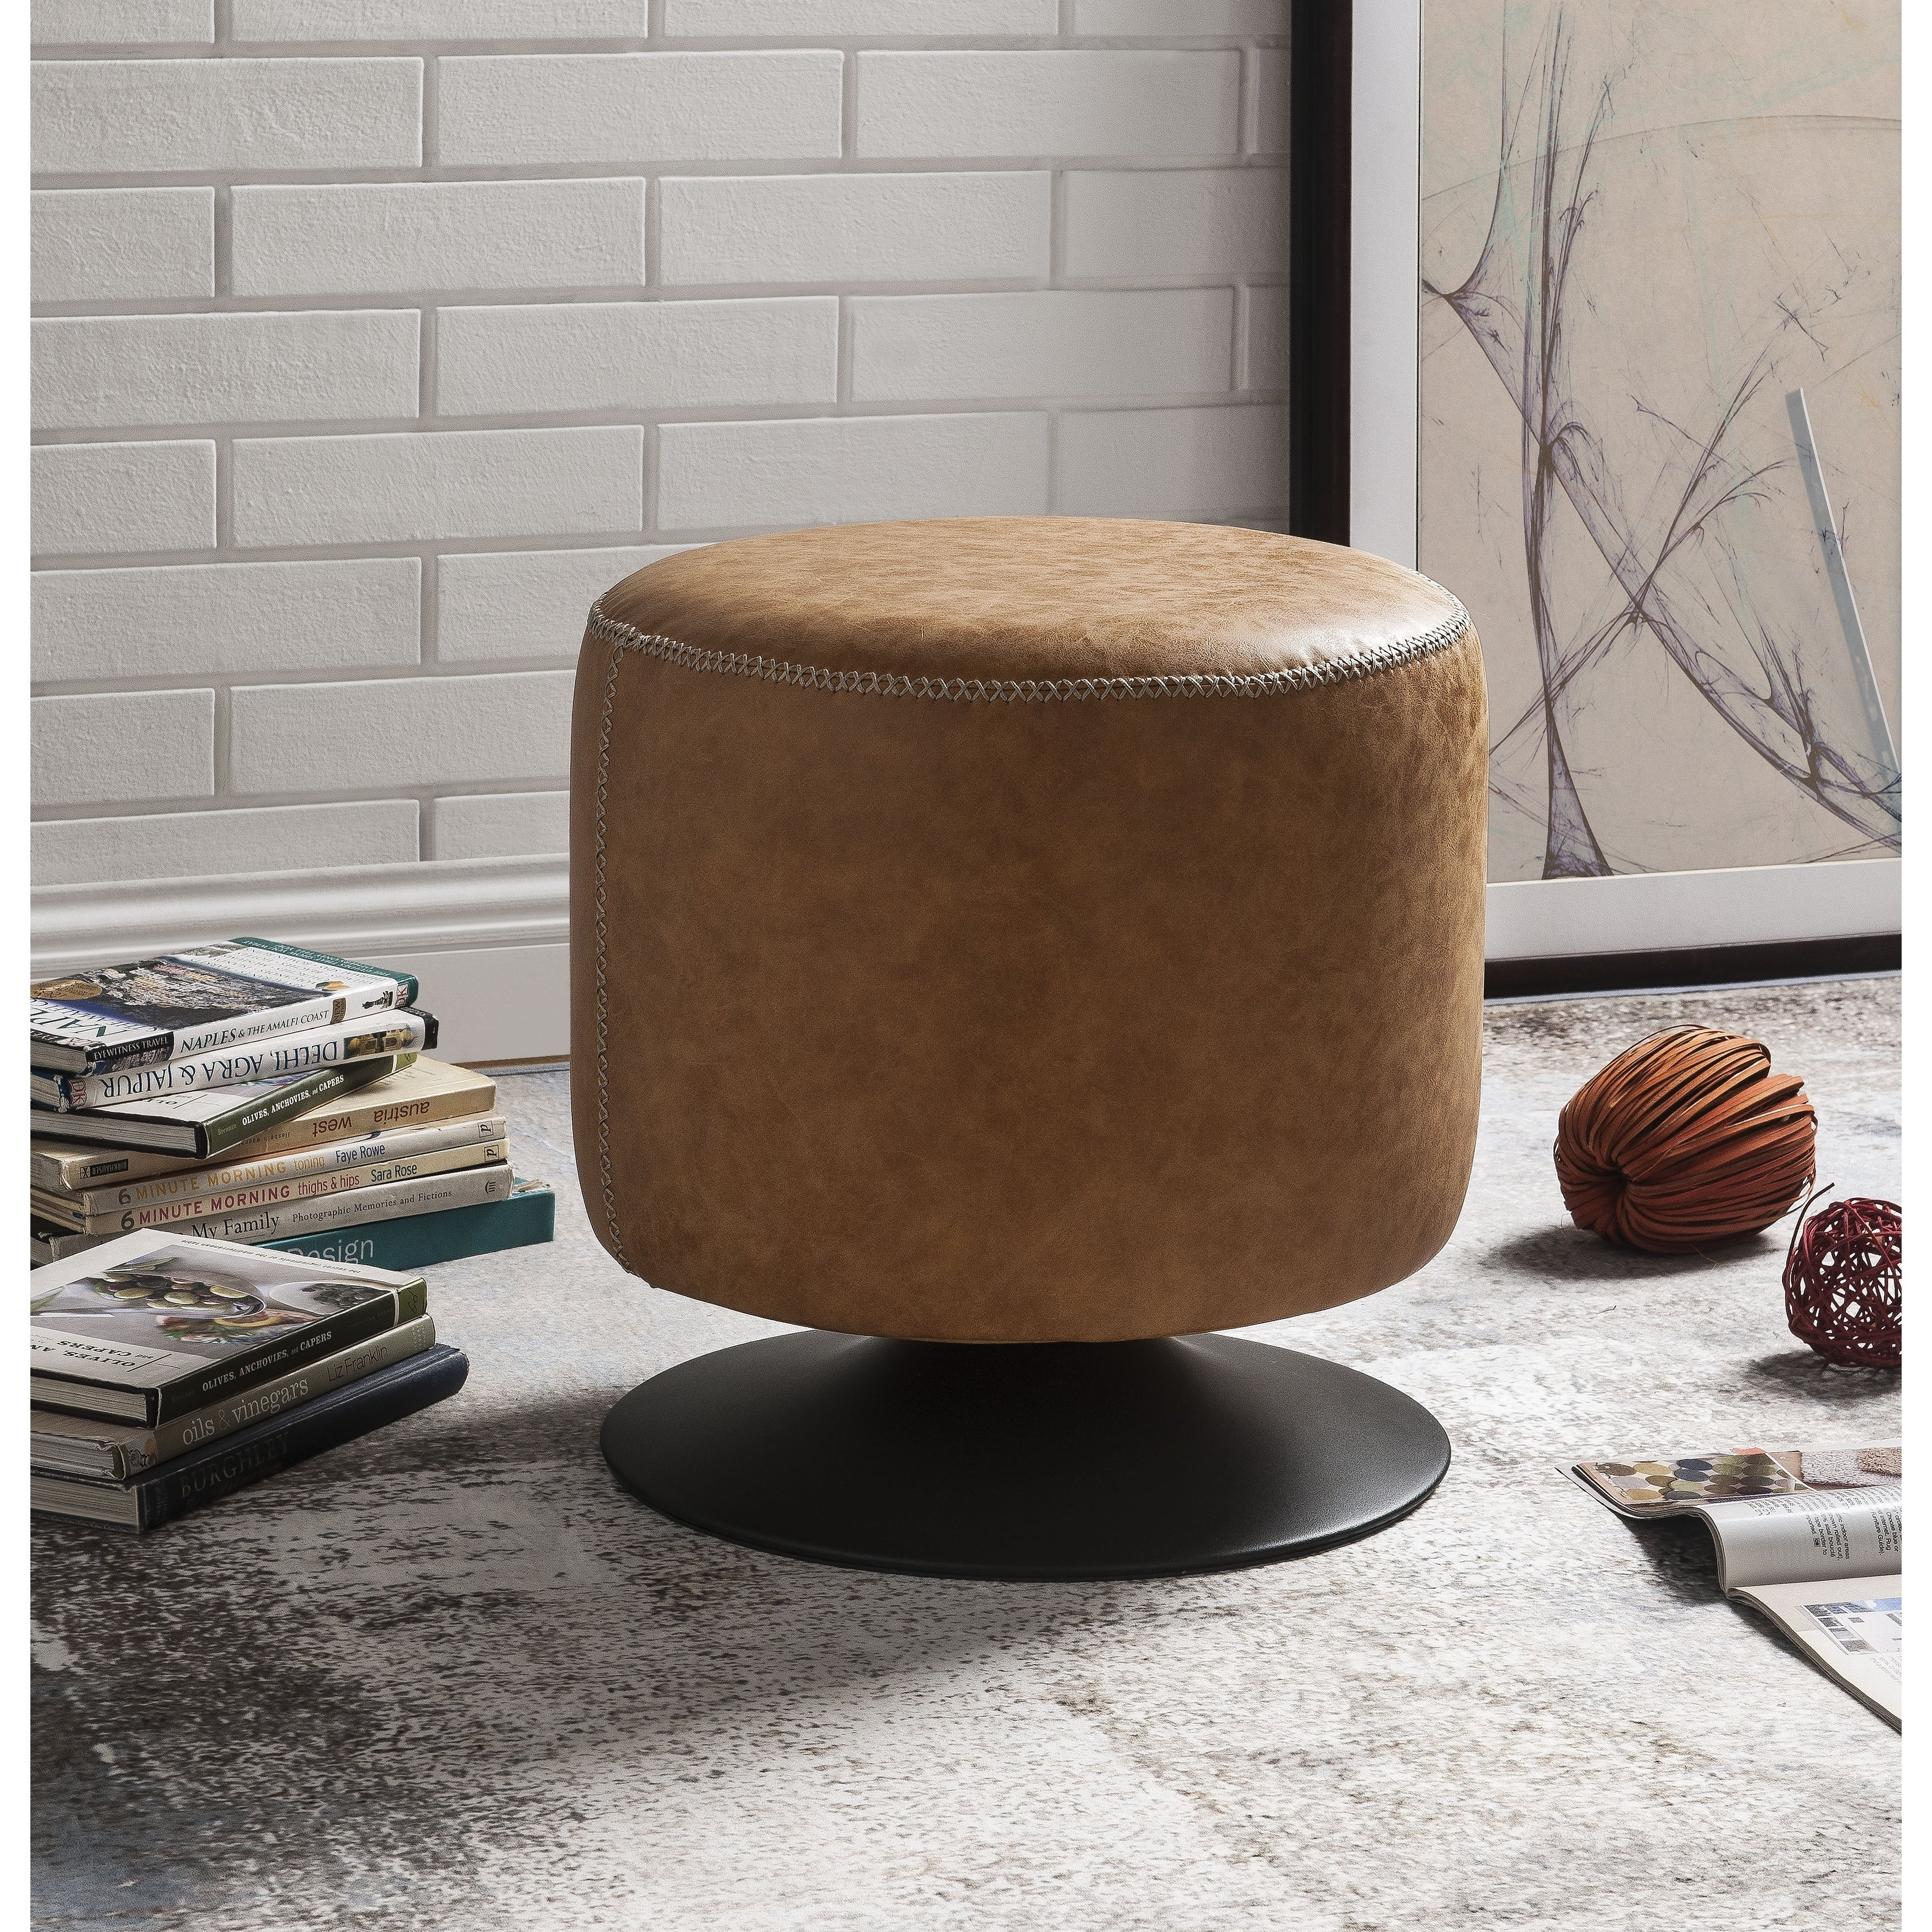 Remarkable Leatherette Upholstered Swivel Ottoman With Round Metal Base Caramel Brown And Black Alphanode Cool Chair Designs And Ideas Alphanodeonline